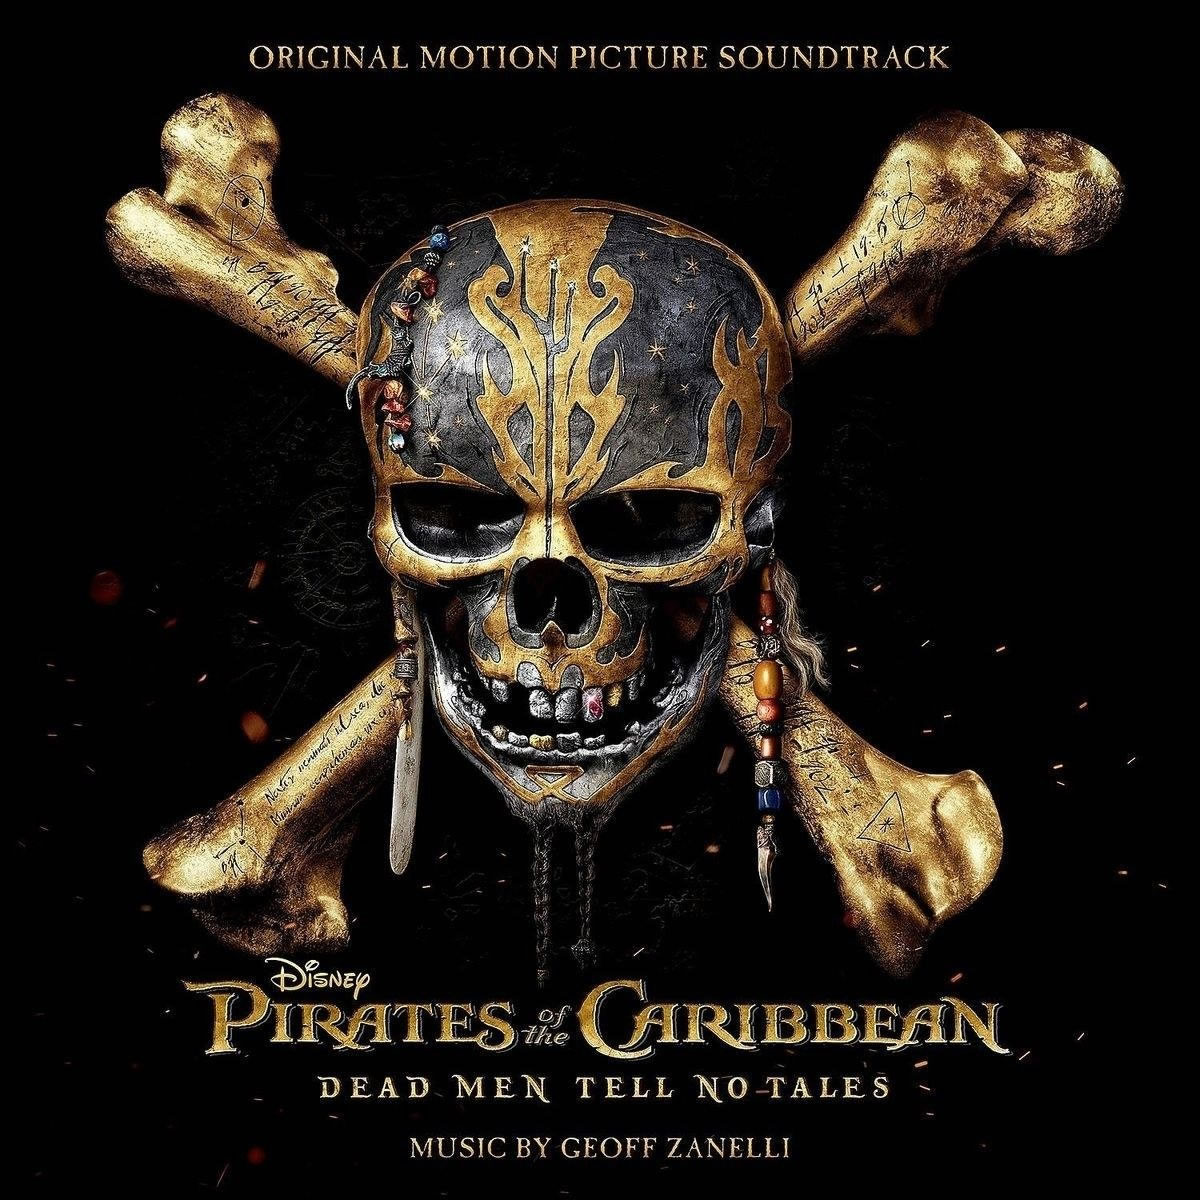 PIRATES OF THE CARIBBEAN: DEAD MEN TELL NO TALES - THE ORIGINAL MOTION PICTURE SOUNDTRACK (AUDIO CD)